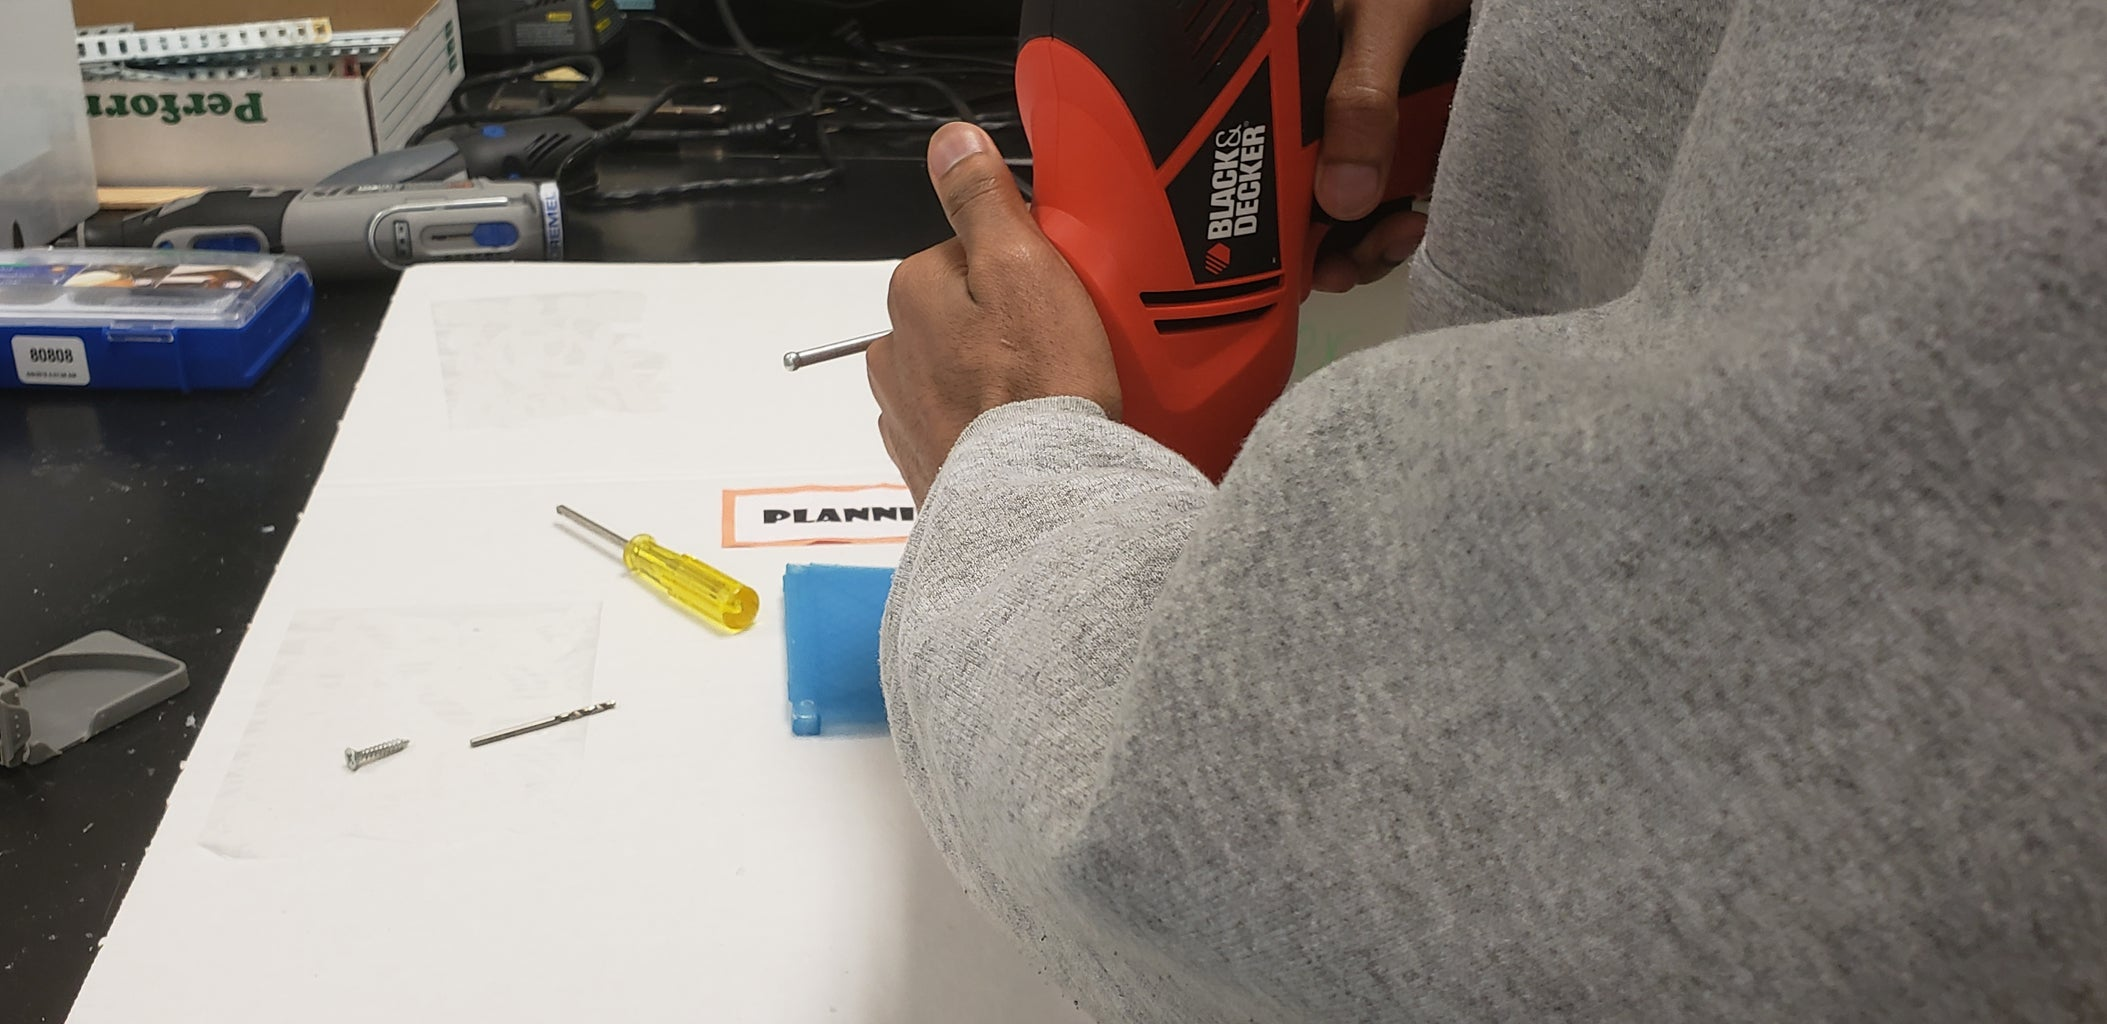 Tools/Safety Practices